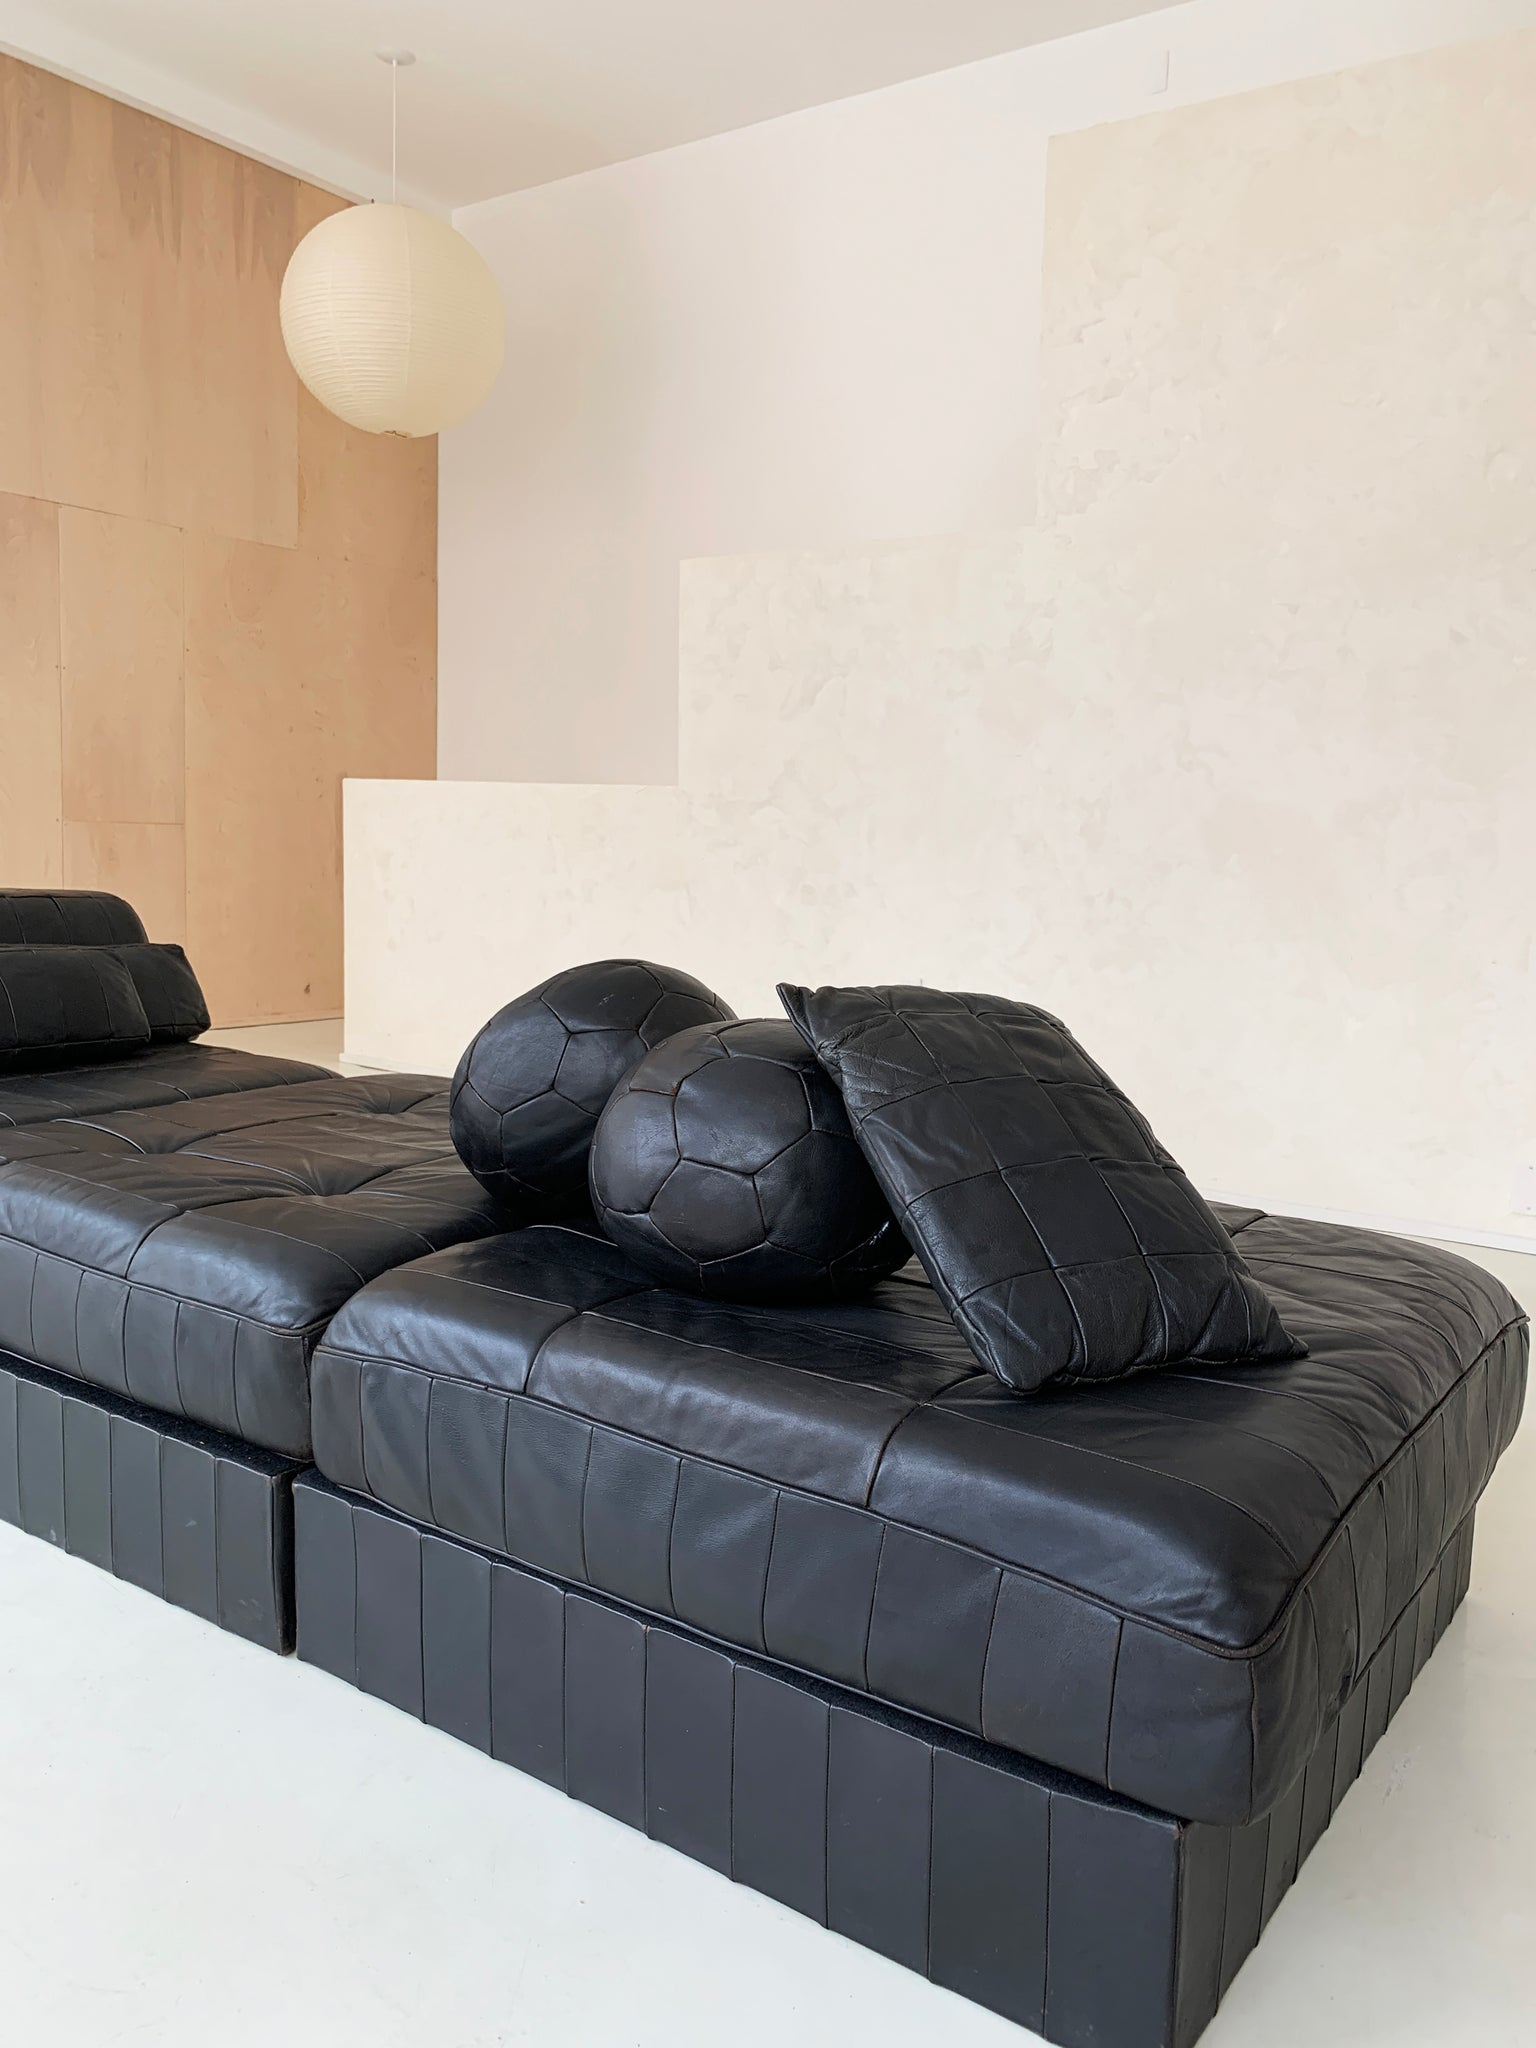 1970s Black Leather Patchwork DS 88 Modular Sofa-Bed by De Sede, Switzerland